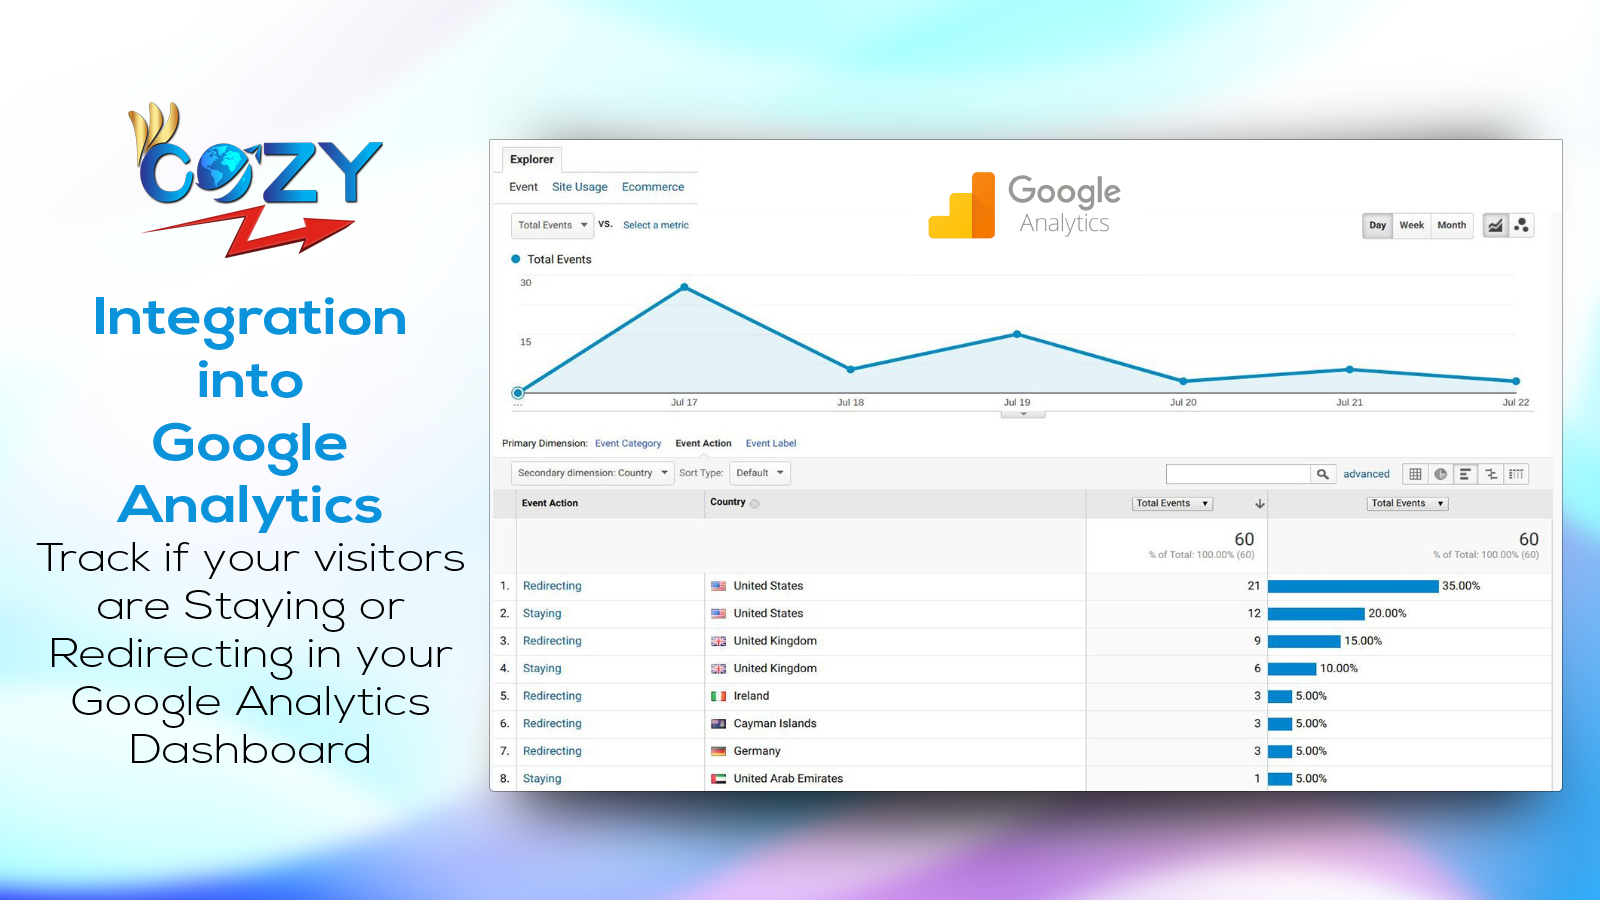 Track your visitors Geo Redirecting in Google Analytic Manager